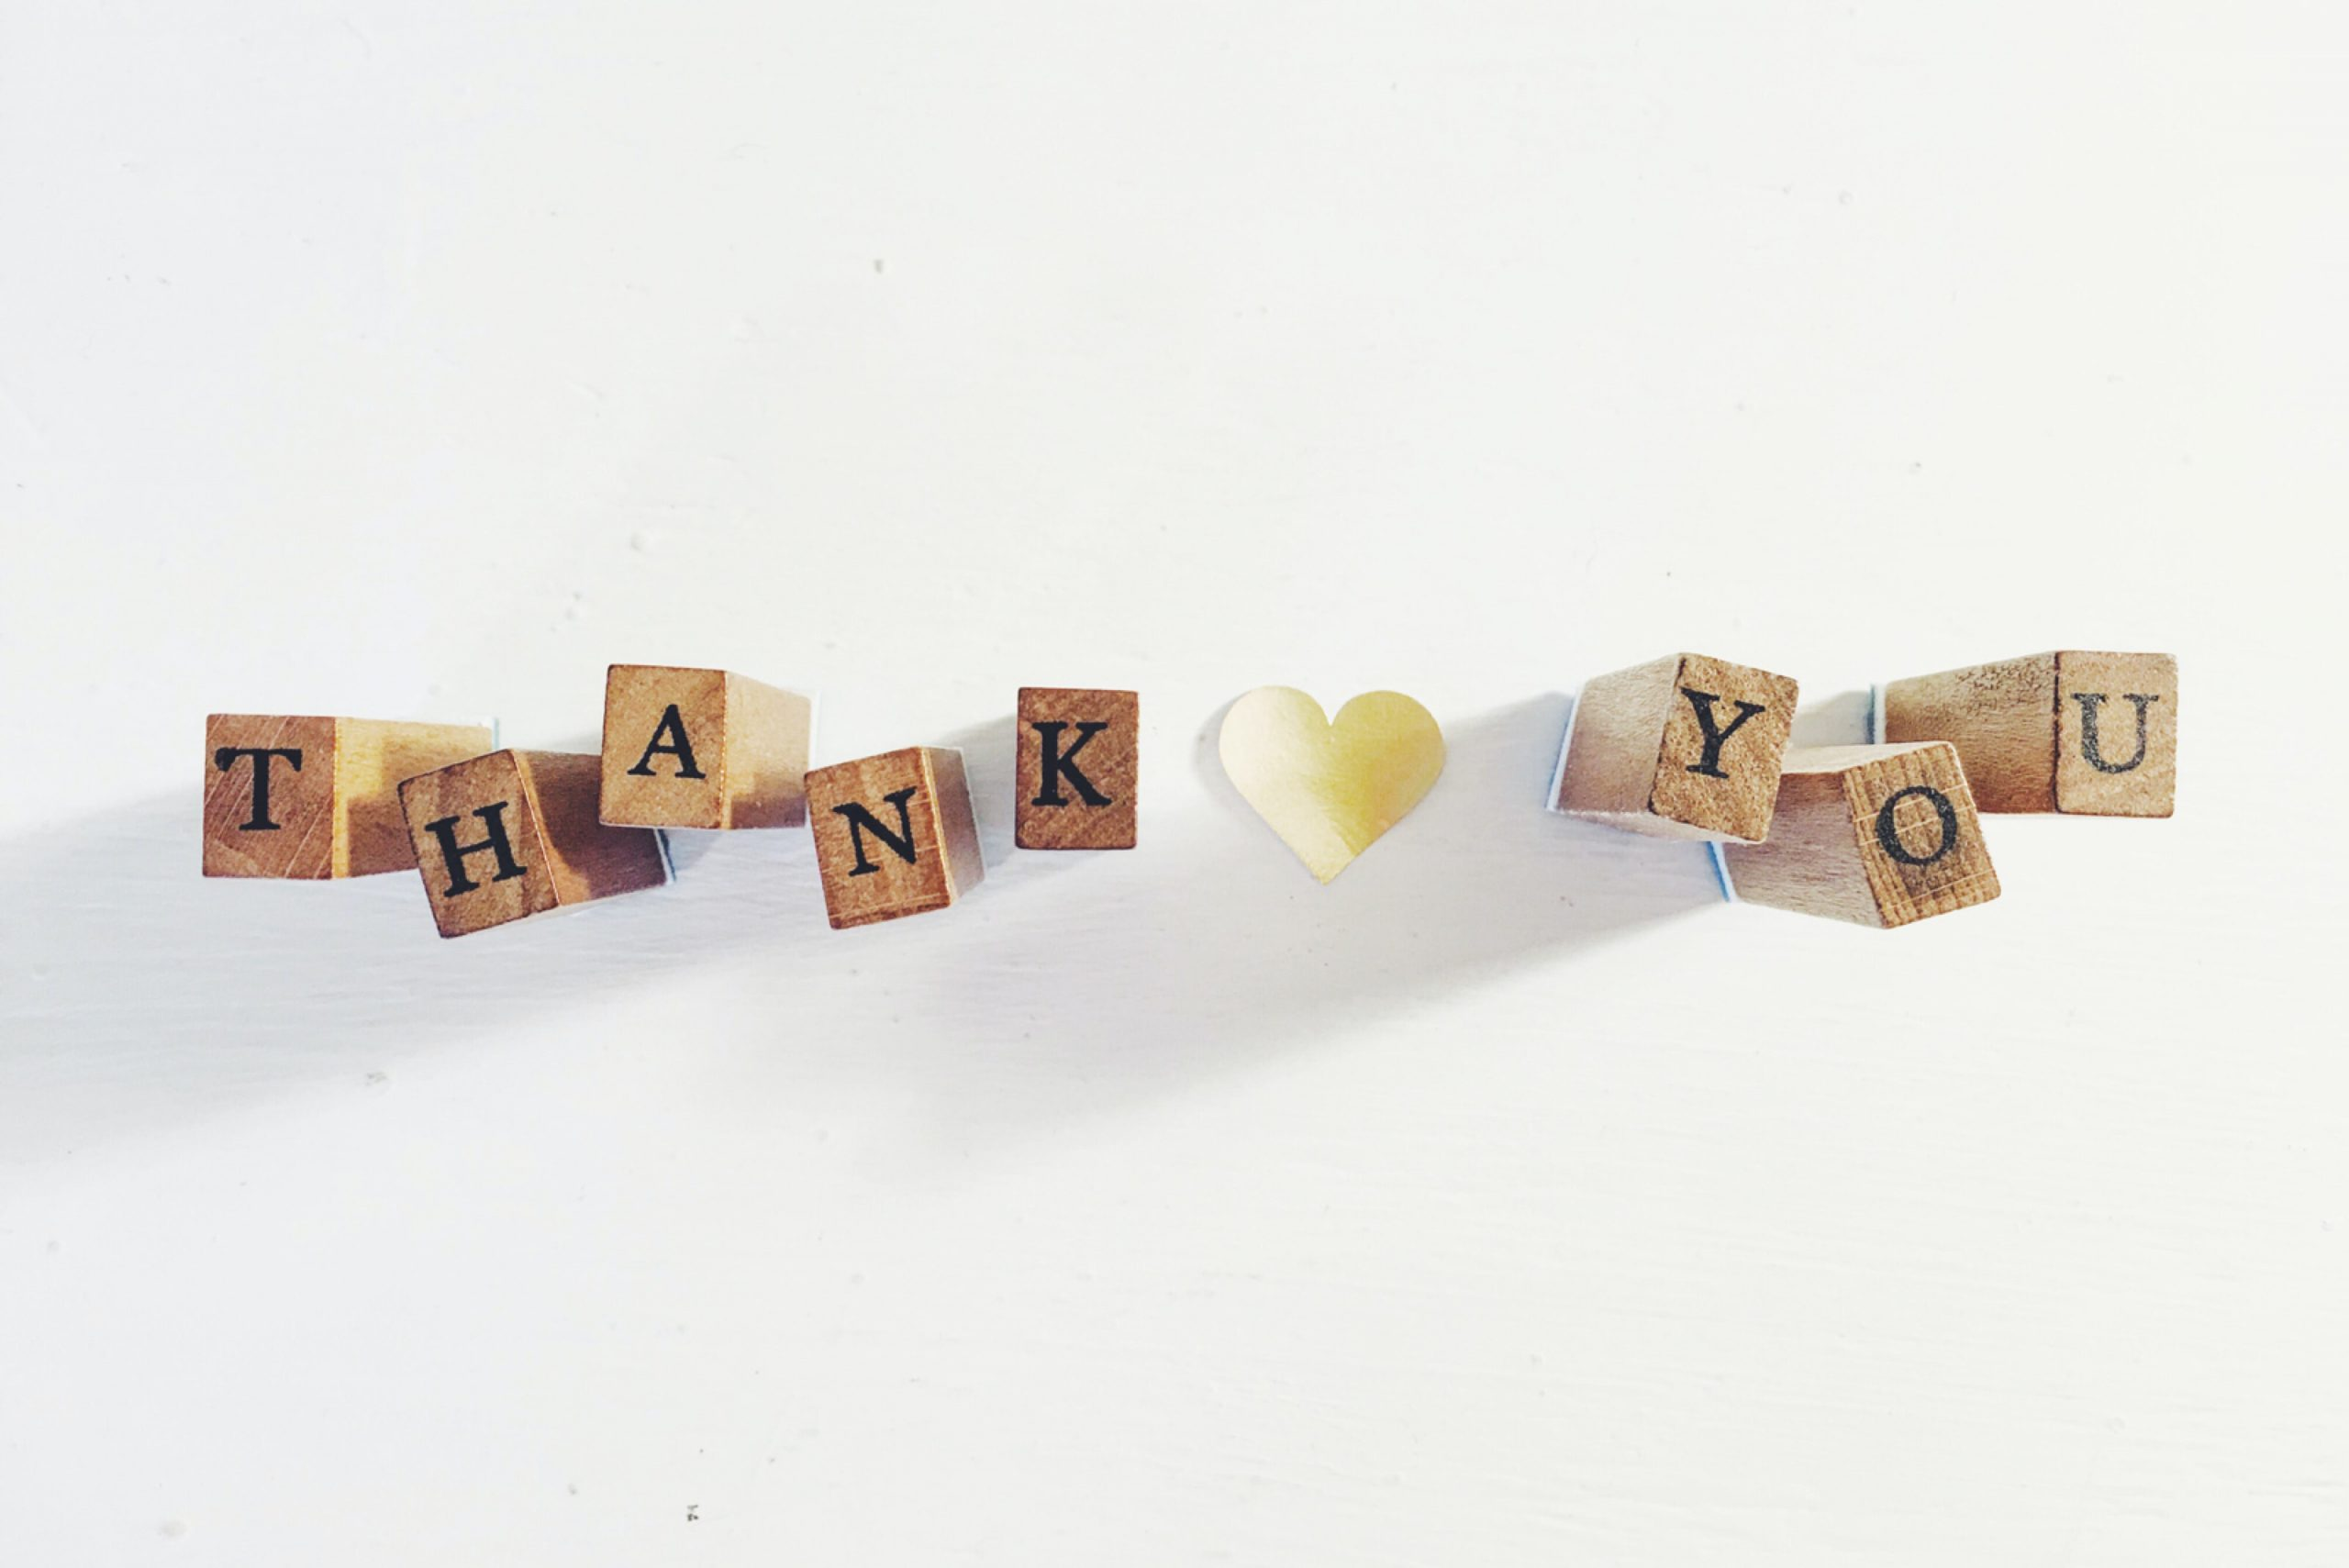 Finding Gratitude in Challenging Times